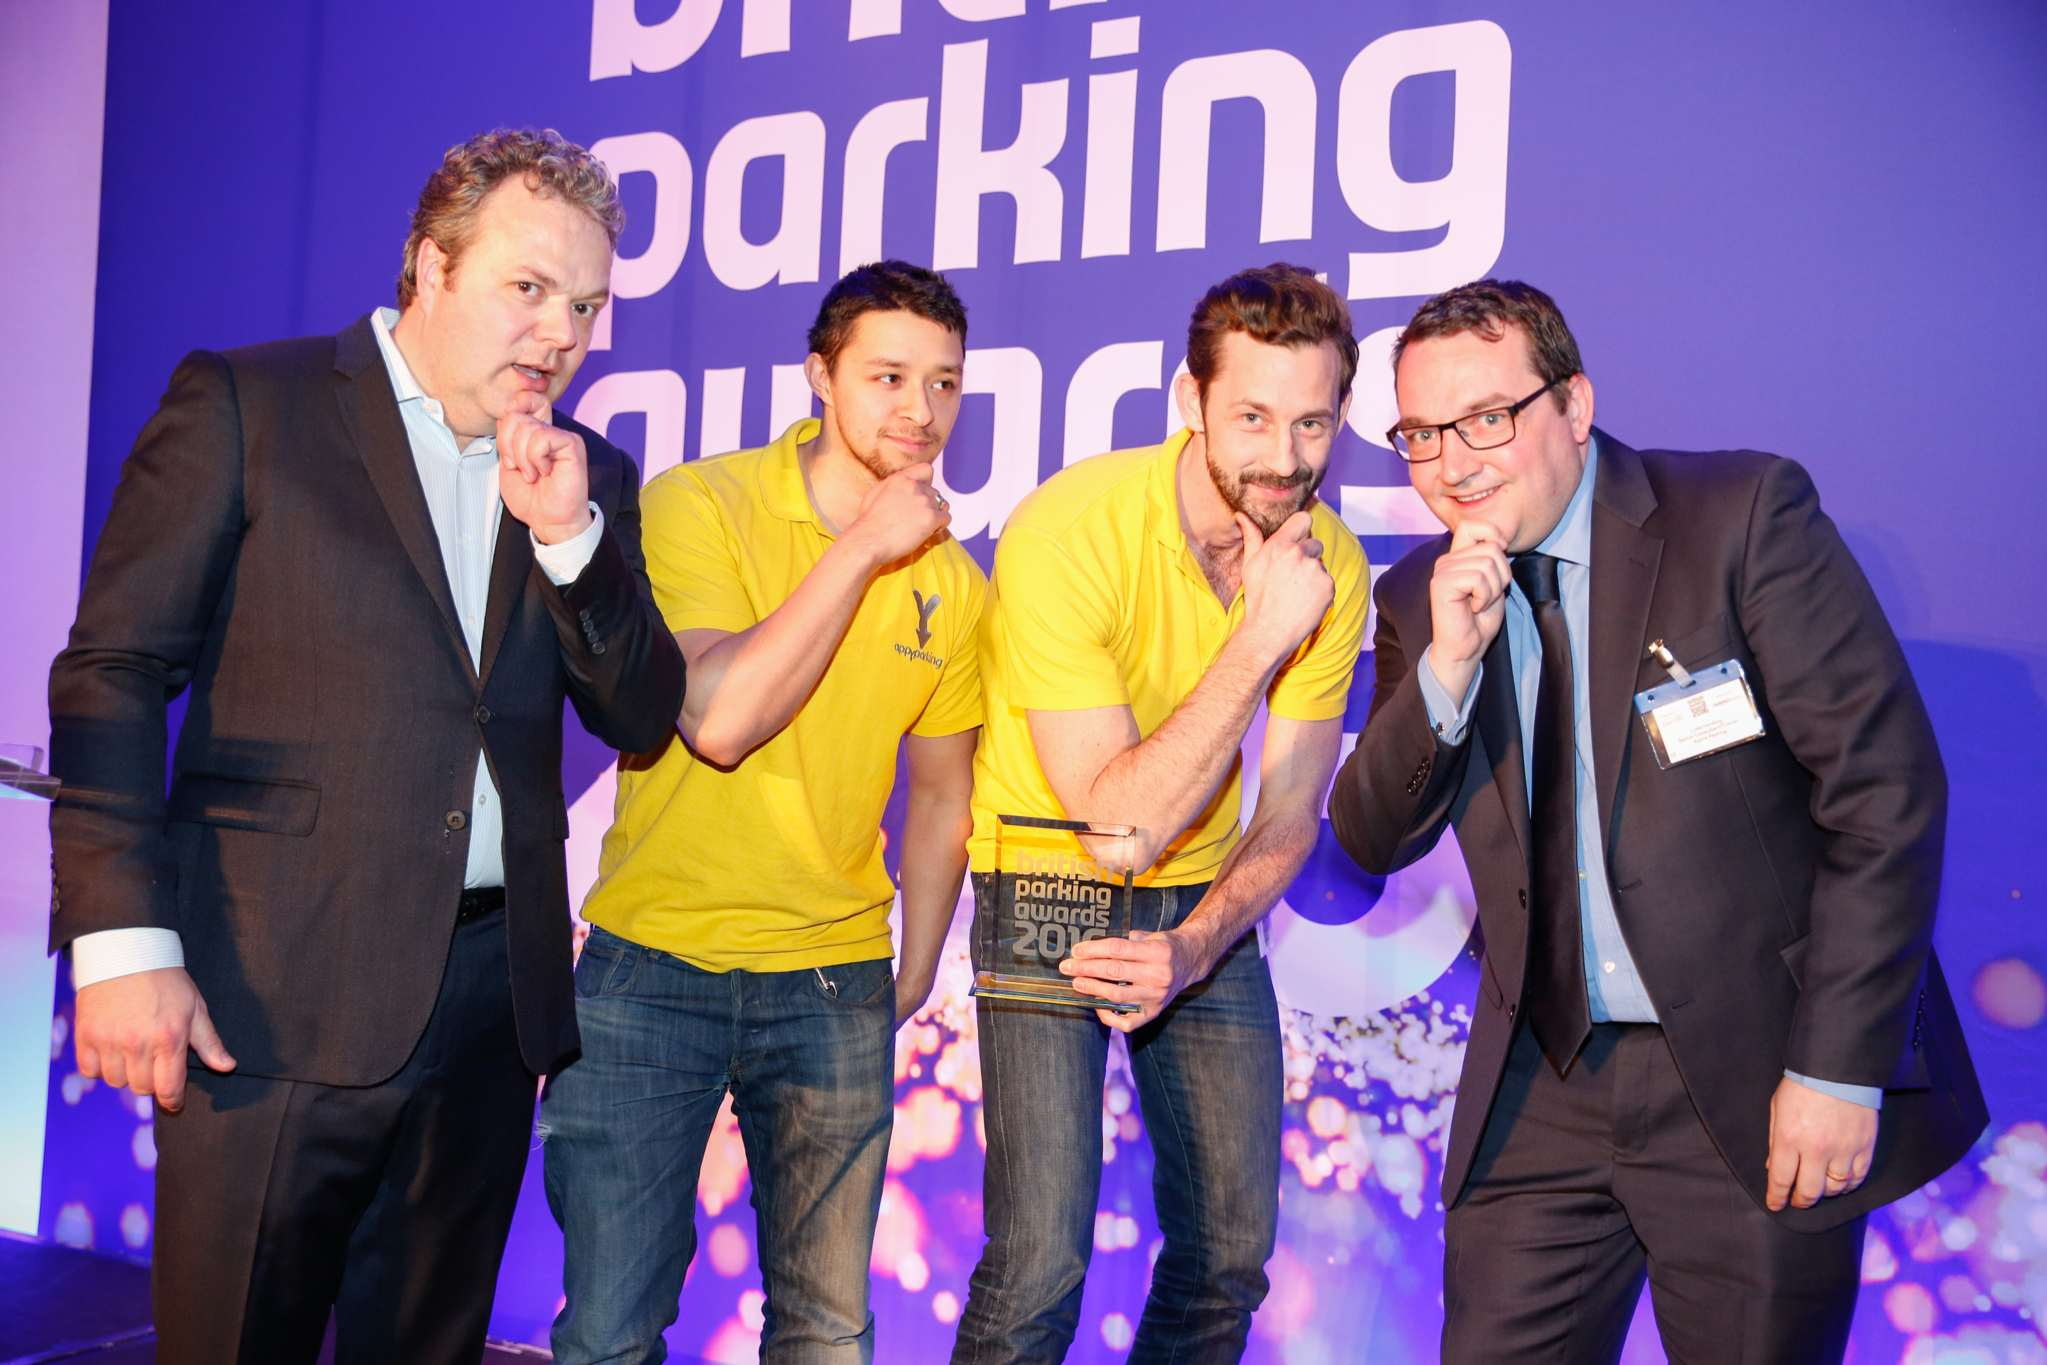 Congratulations to all the British Parking Award winners!